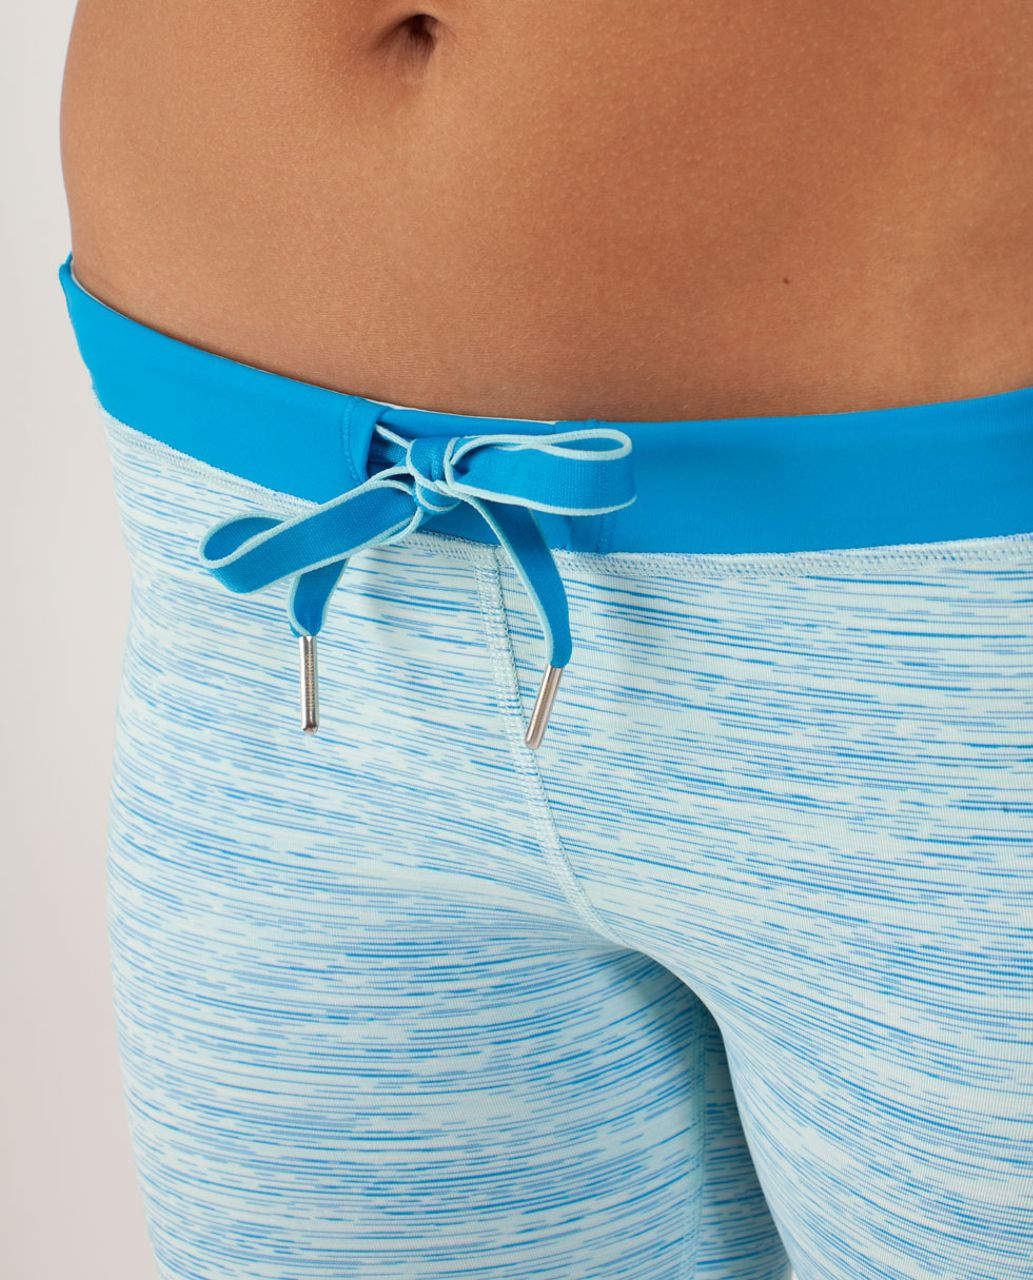 Lululemon Beach Runner Crop - Wee Are From Space Aquamarine / Beach Blanket Blue / Aquamarine